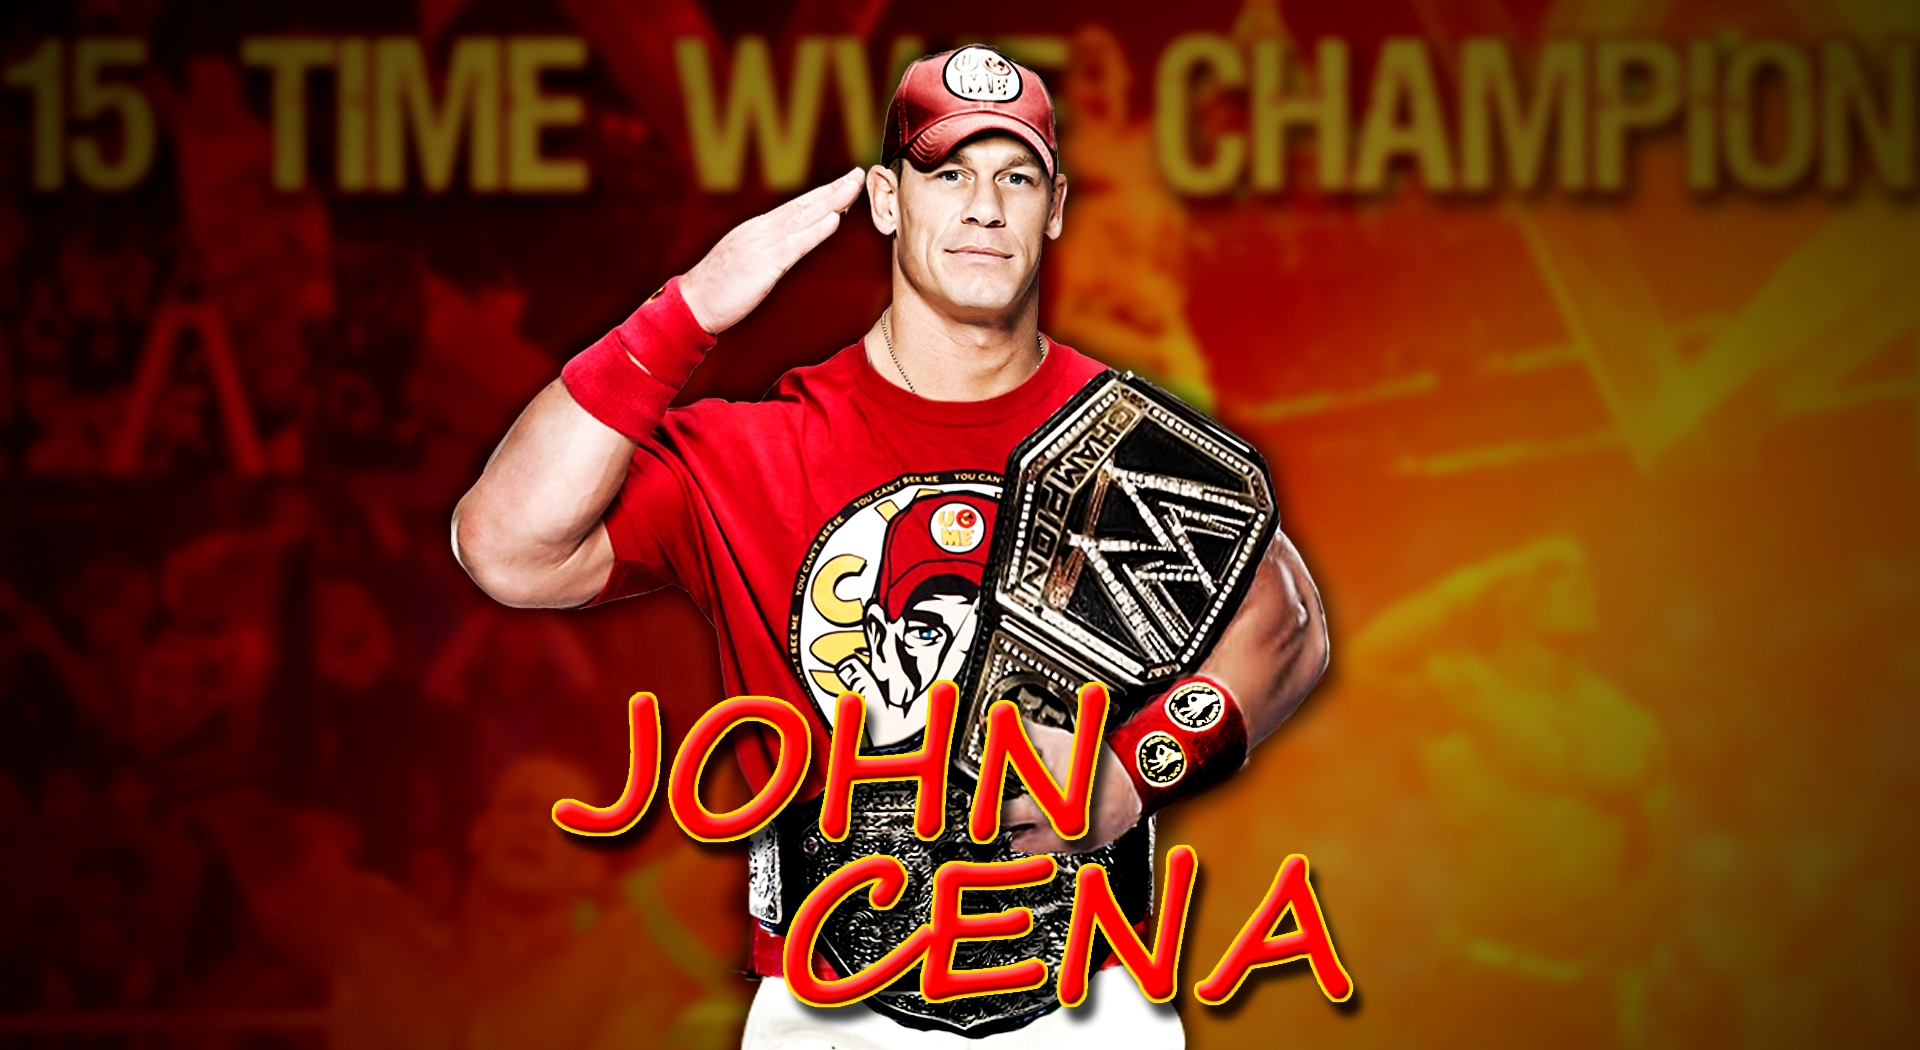 john cena wallpaper salut